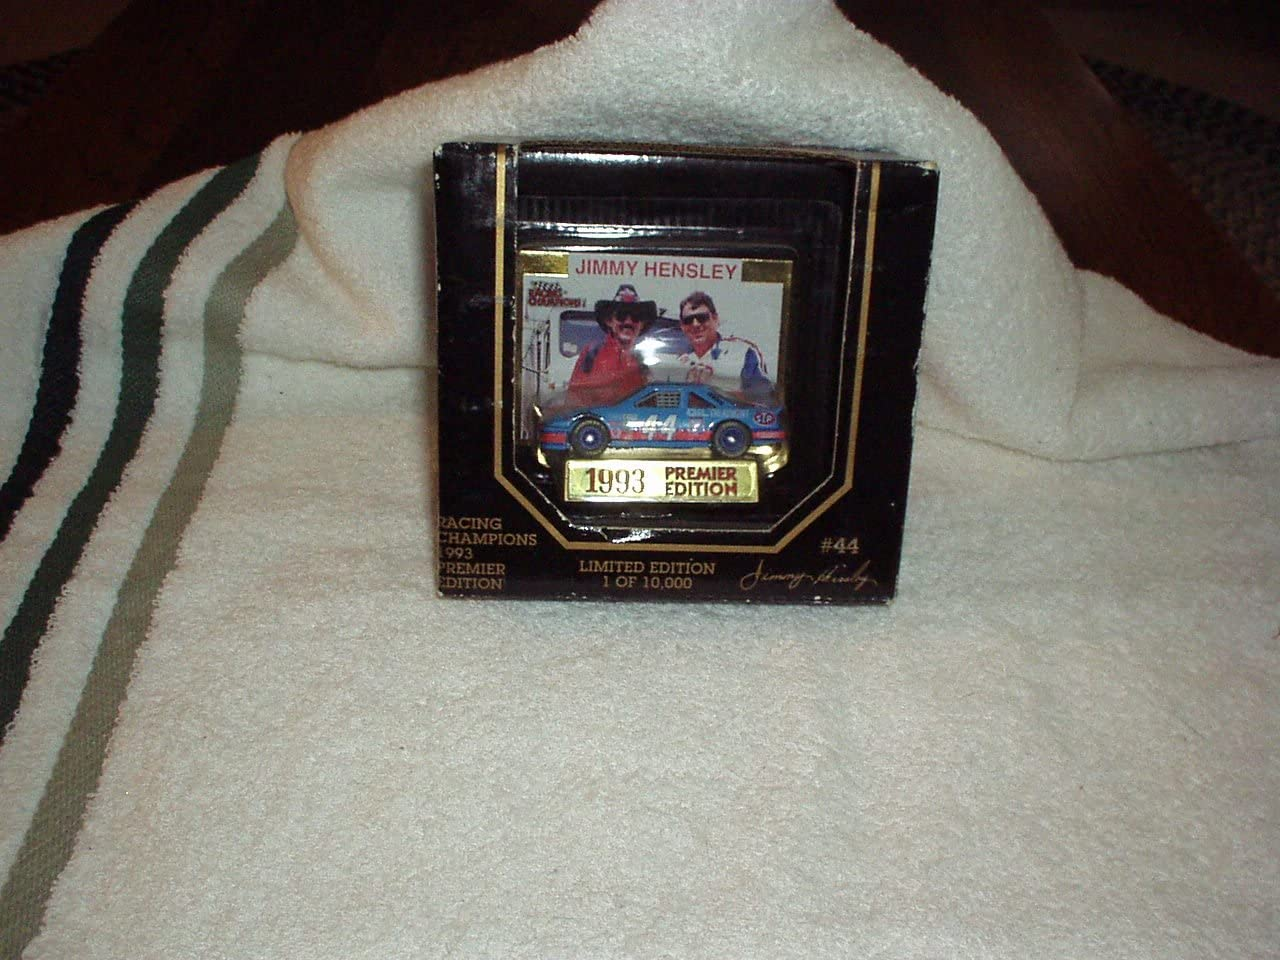 NASCAR Jimmy Hensley Racing Champions 1993 Premier Edition #44 Rare Collectible